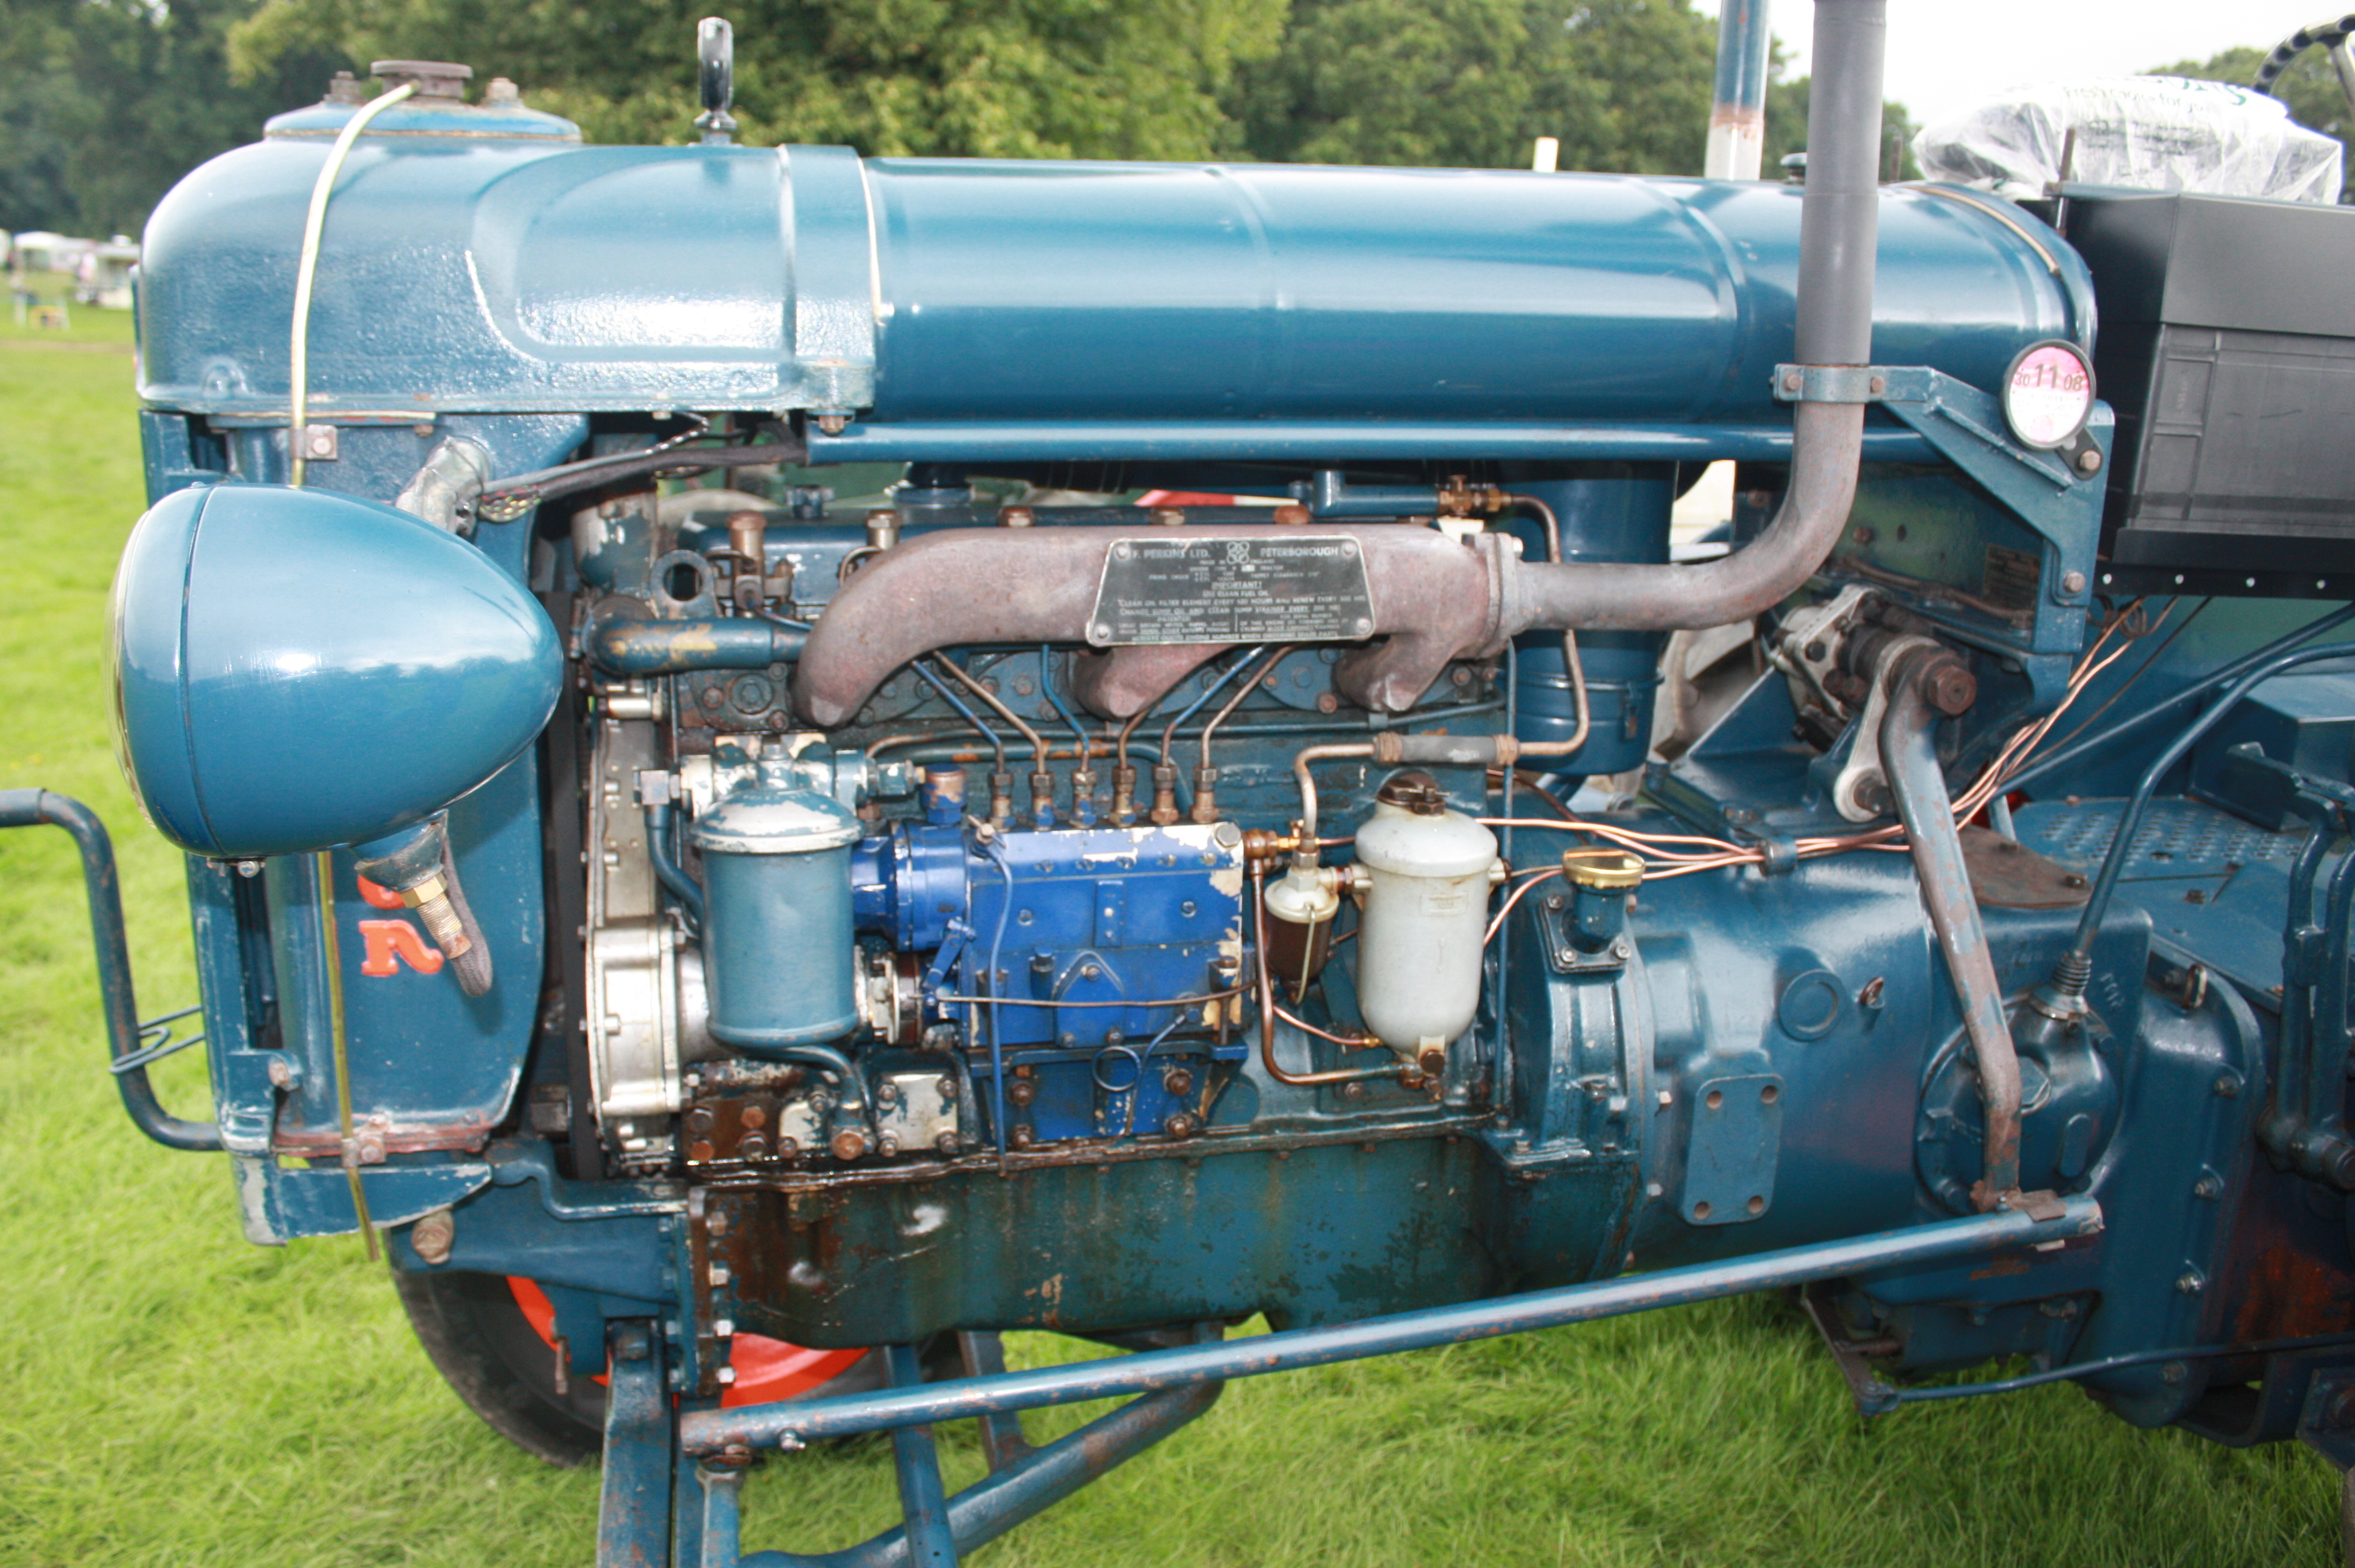 fordson dexta with Perkins on Farg 1l Fordson Gran additionally T1765 Diferencias Entre Ebro 160d Y 160e further File Fordson Dexta p2 besides 1962 1970 in addition 932838.